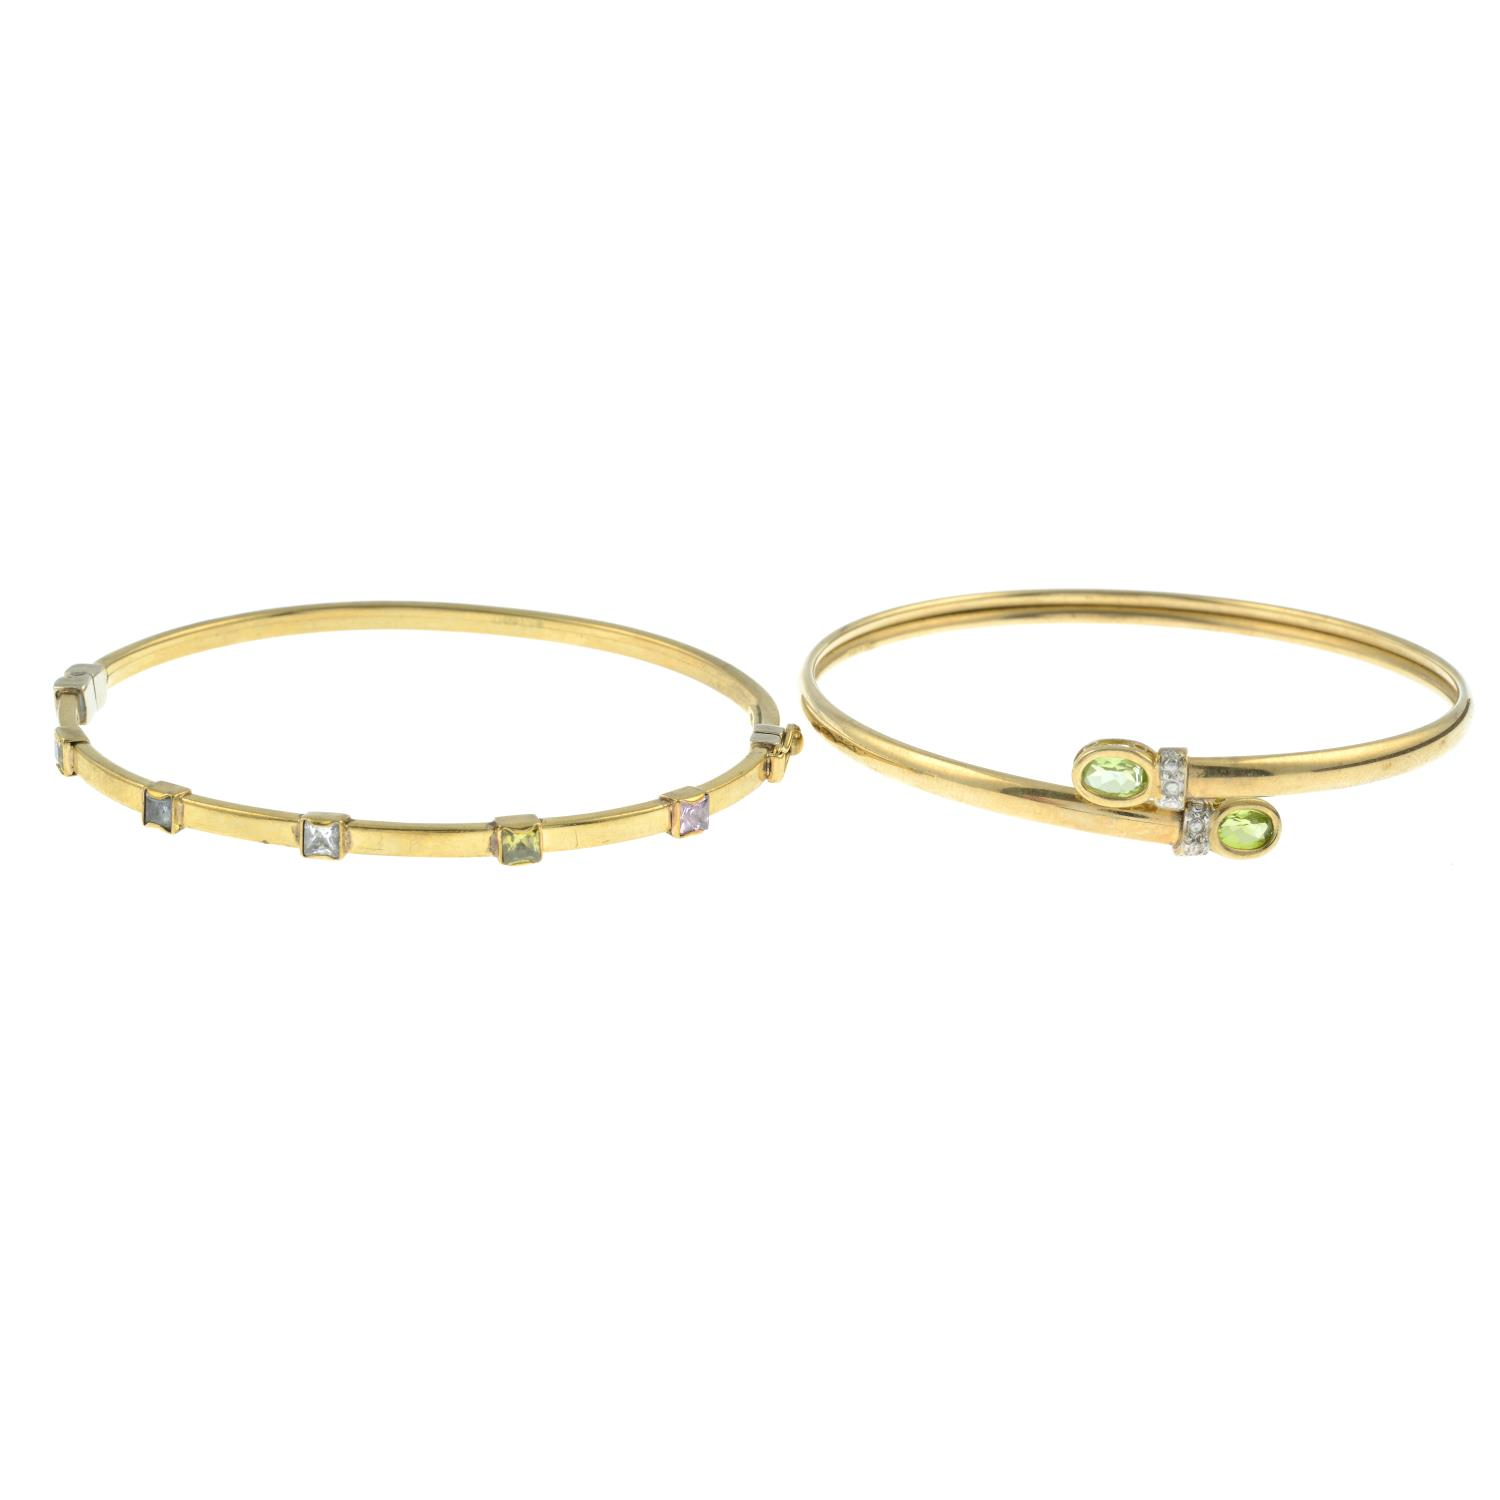 A 9ct gold multi-gem bangle along with a 9ct gold peridot bangle.Both stamped 375.